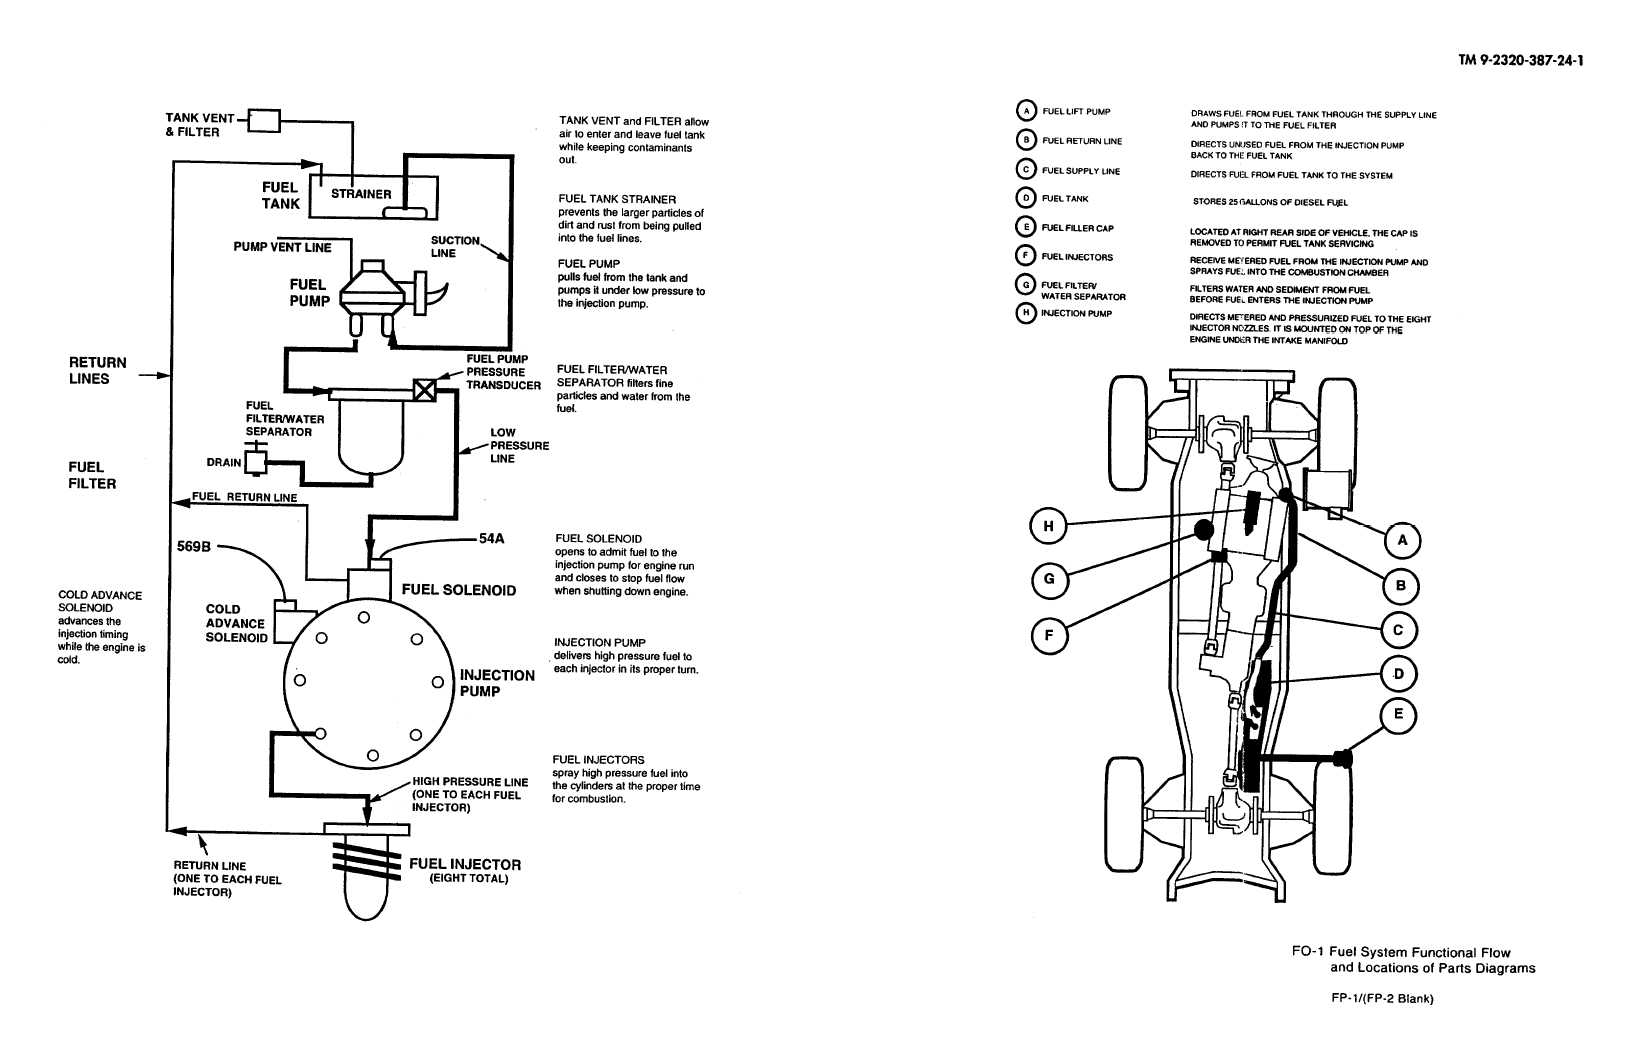 Magnificent Do 1 Fuel System Functional Flow And Locations Of Parts Diagrams Wiring 101 Hemtstreekradiomeanderfmnl